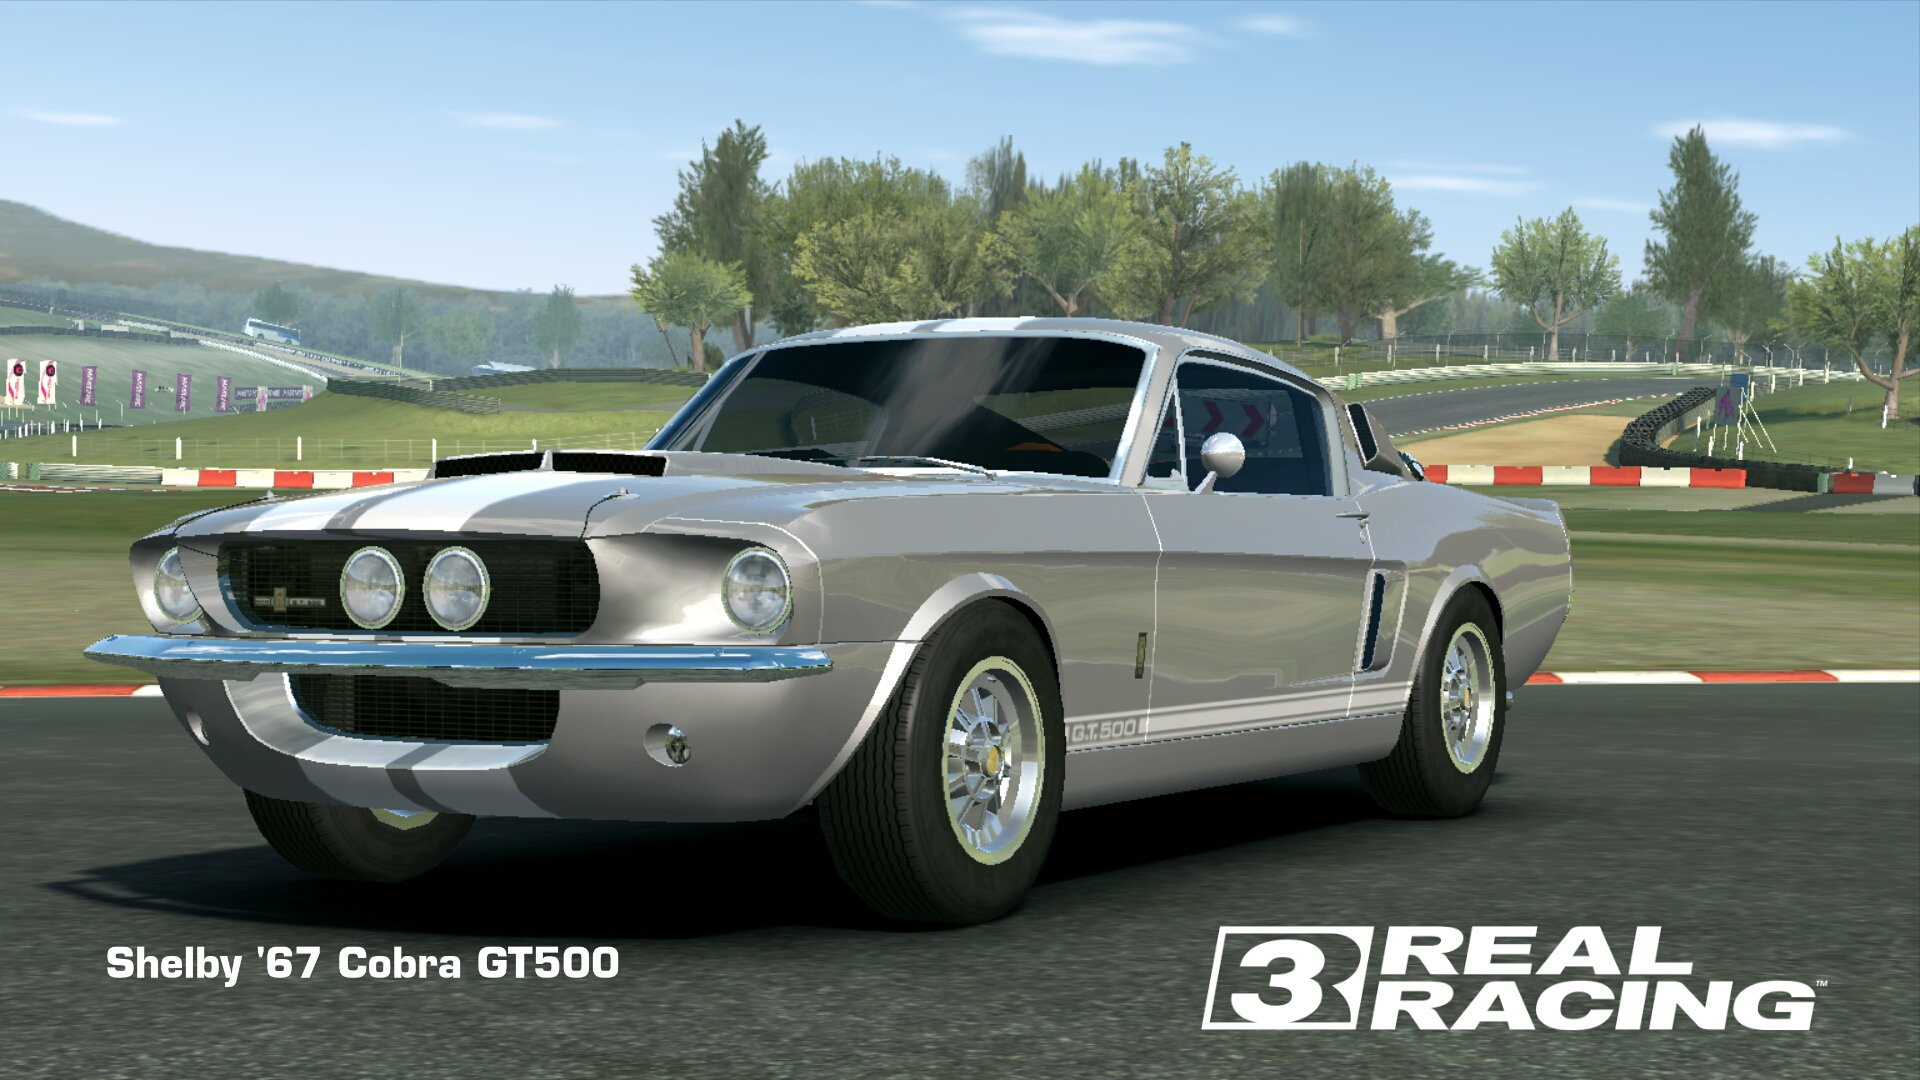 Showcase Shelby '67 Cobra GT500